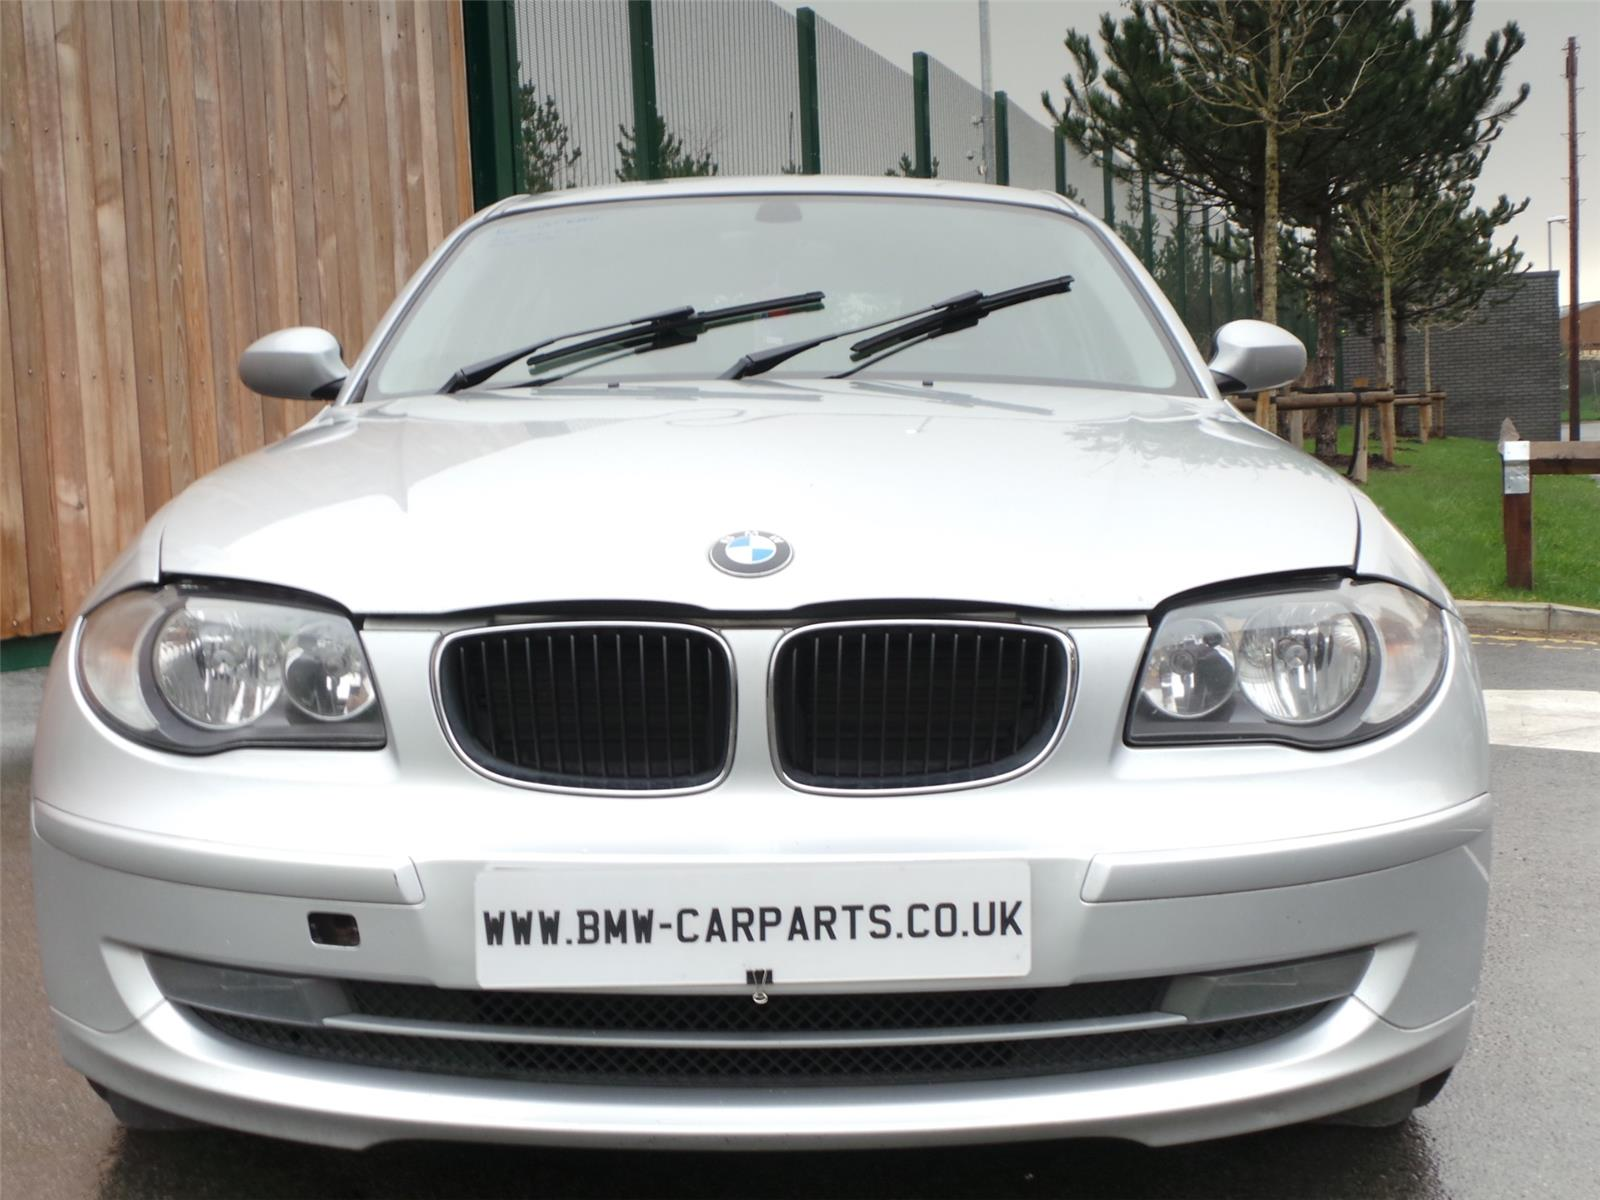 2008 bmw 1 series 118d se 5 door hatchback diesel manual breaking for used and spare parts. Black Bedroom Furniture Sets. Home Design Ideas